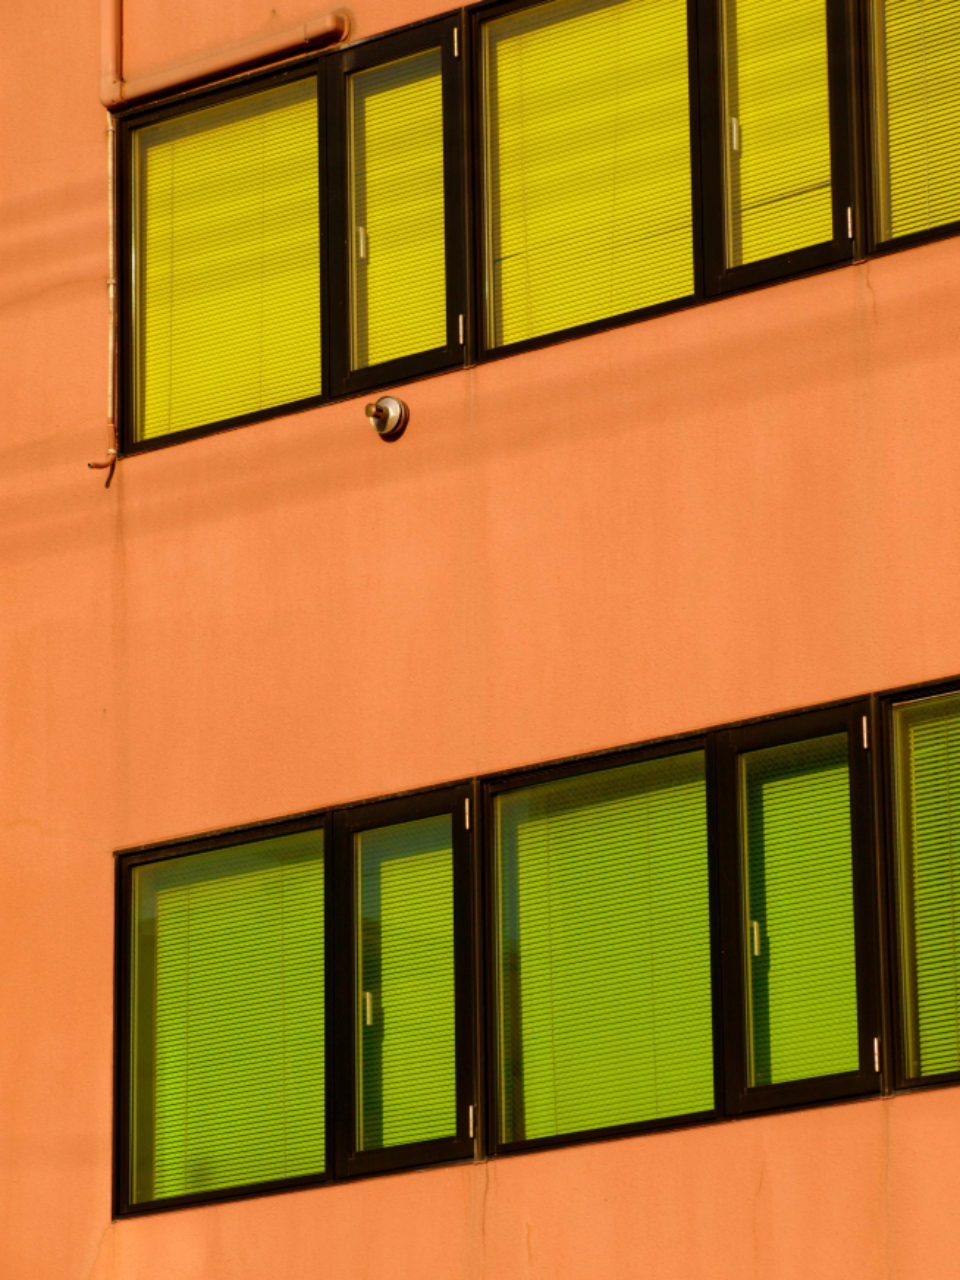 colorful exterior wall windows building orange yellow green architecture house home color facade apartment